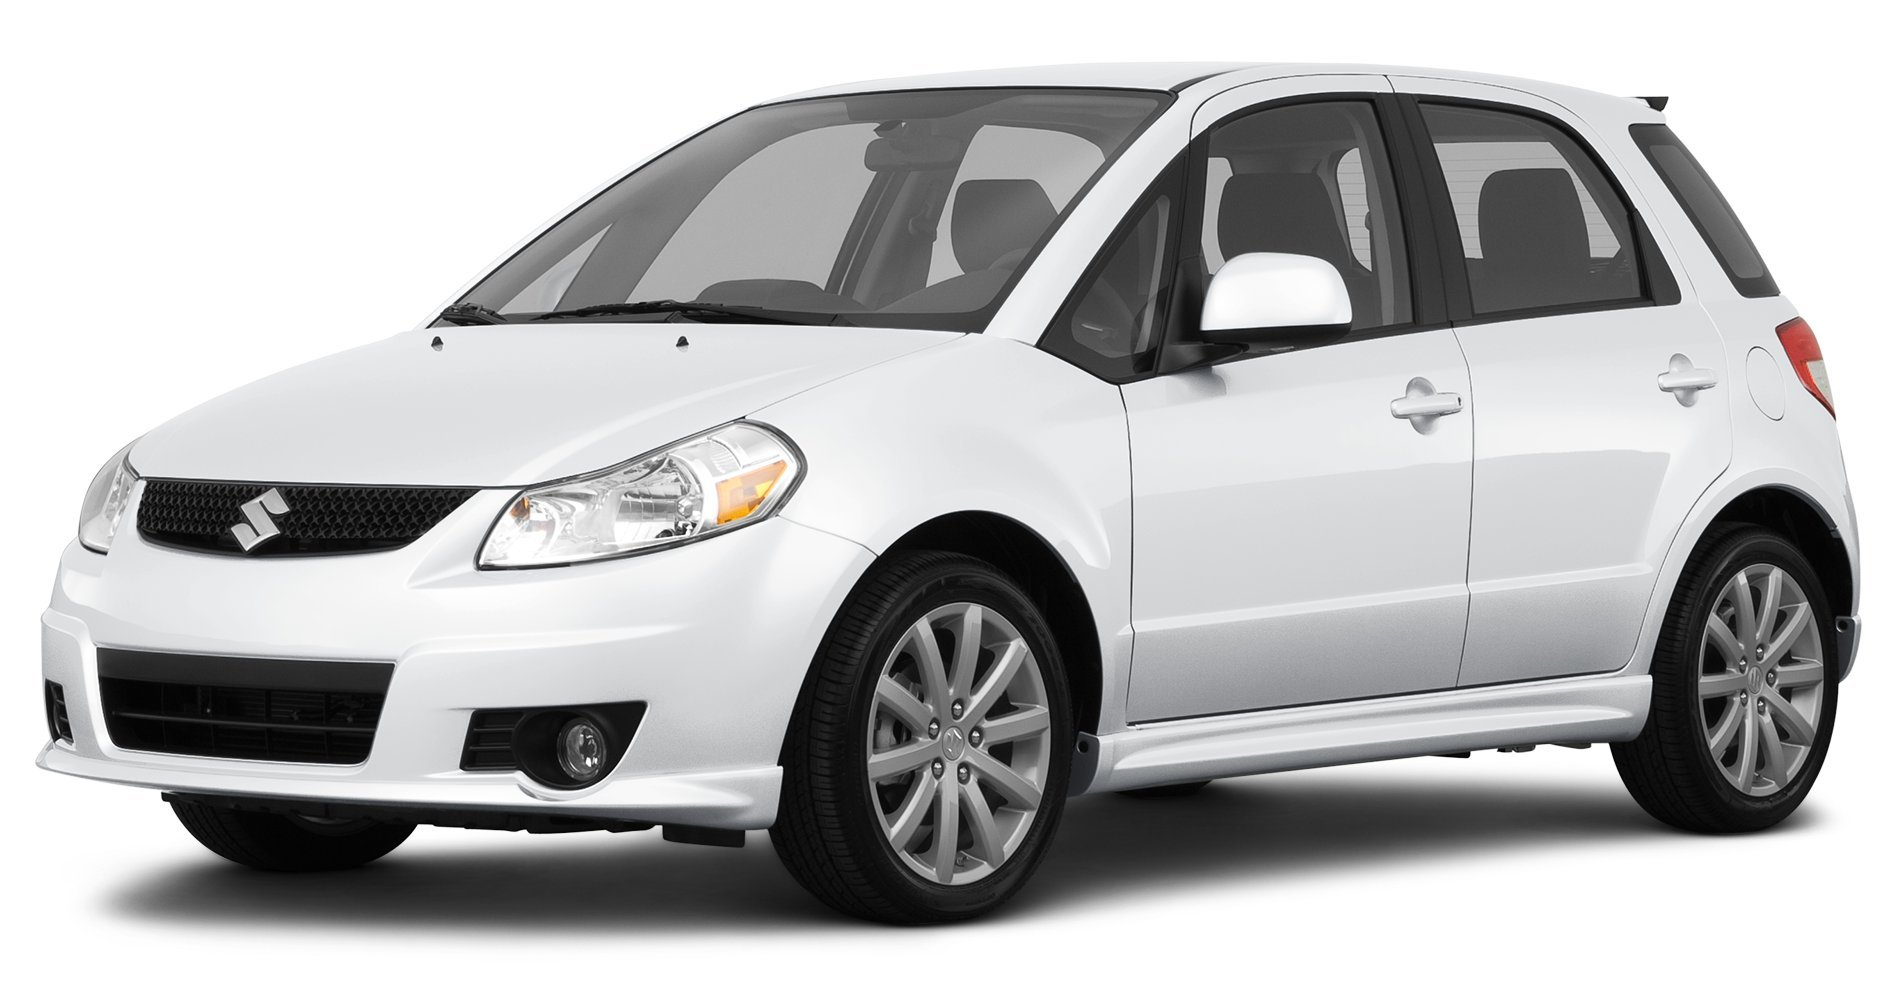 Worksheet. Amazoncom 2011 Ford Fiesta Reviews Images and Specs Vehicles